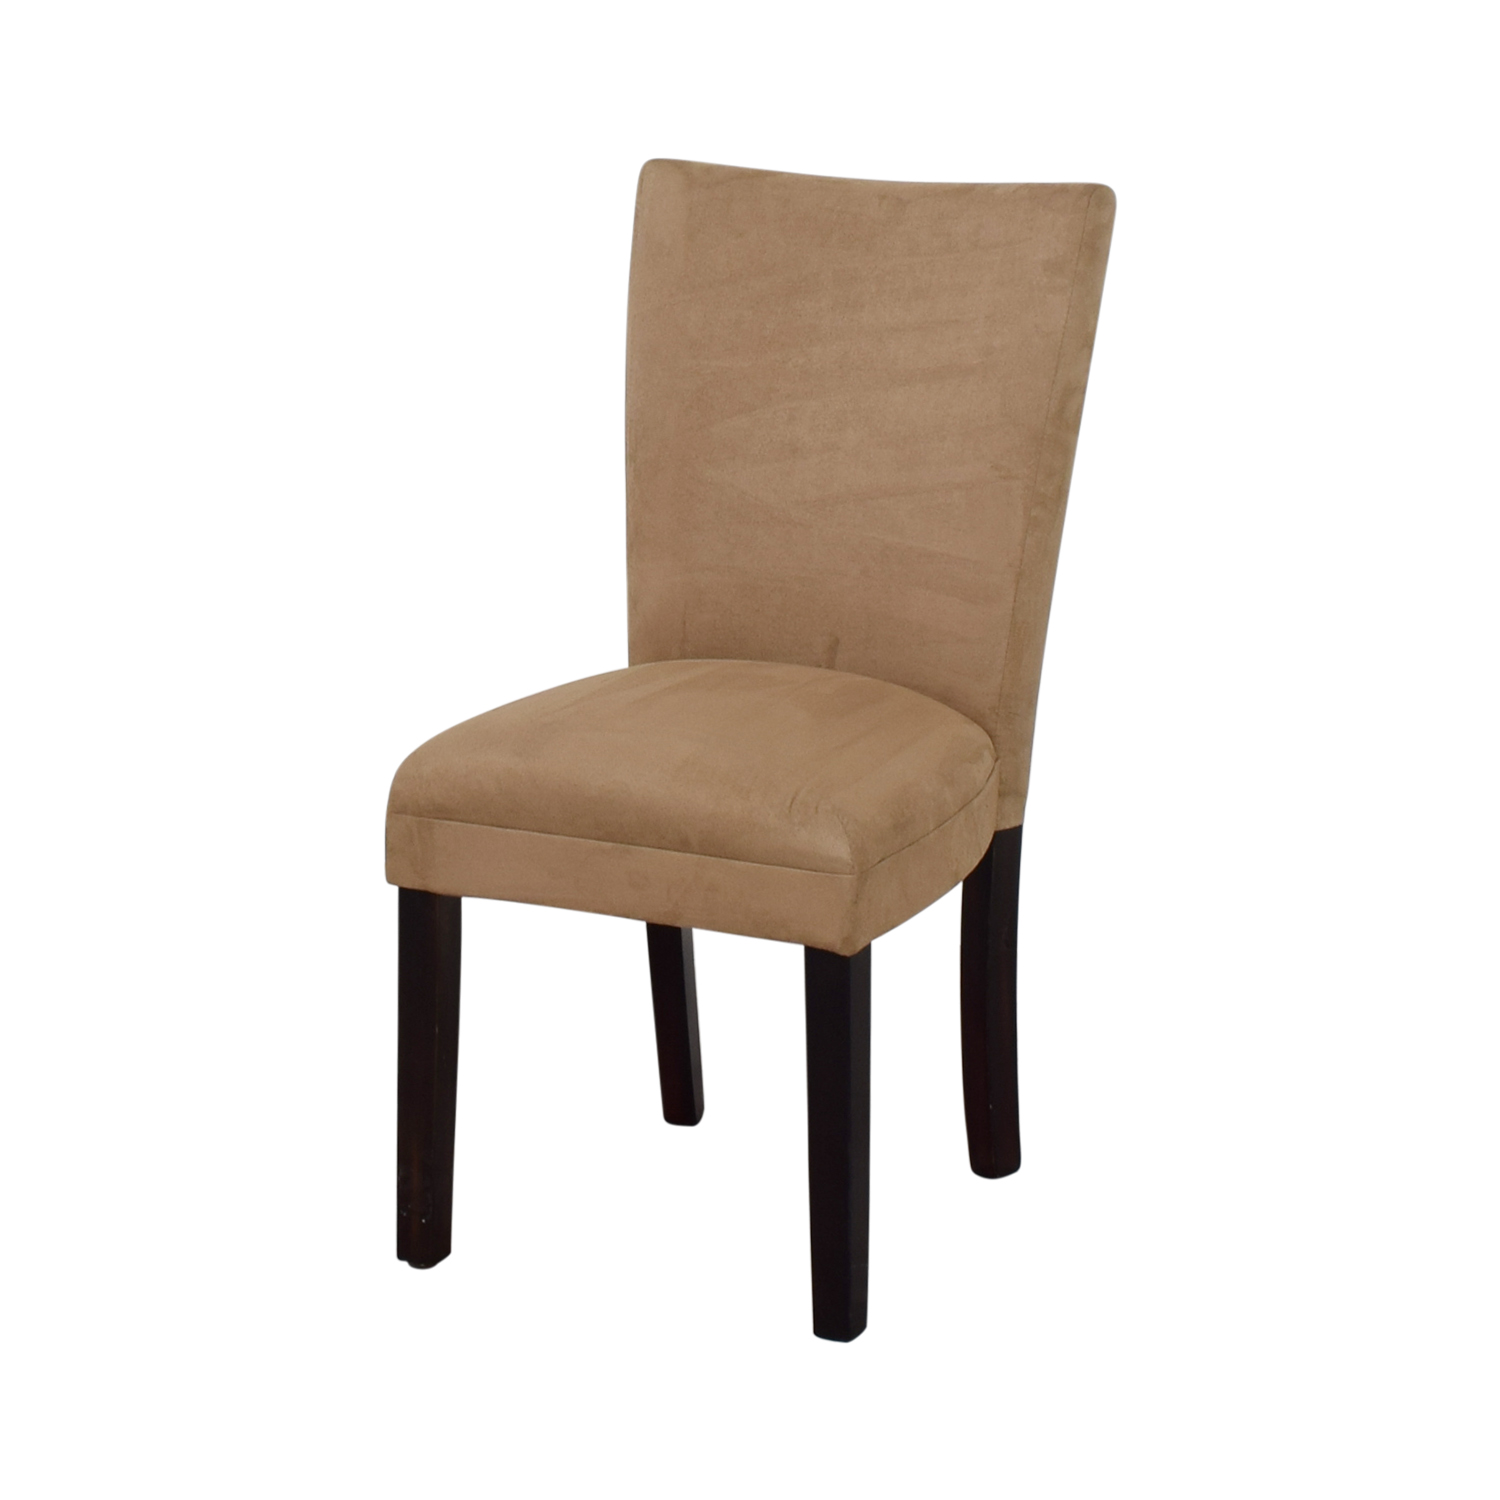 Coaster Furniture Parsons Taupe Microfiber Fabric Chair used